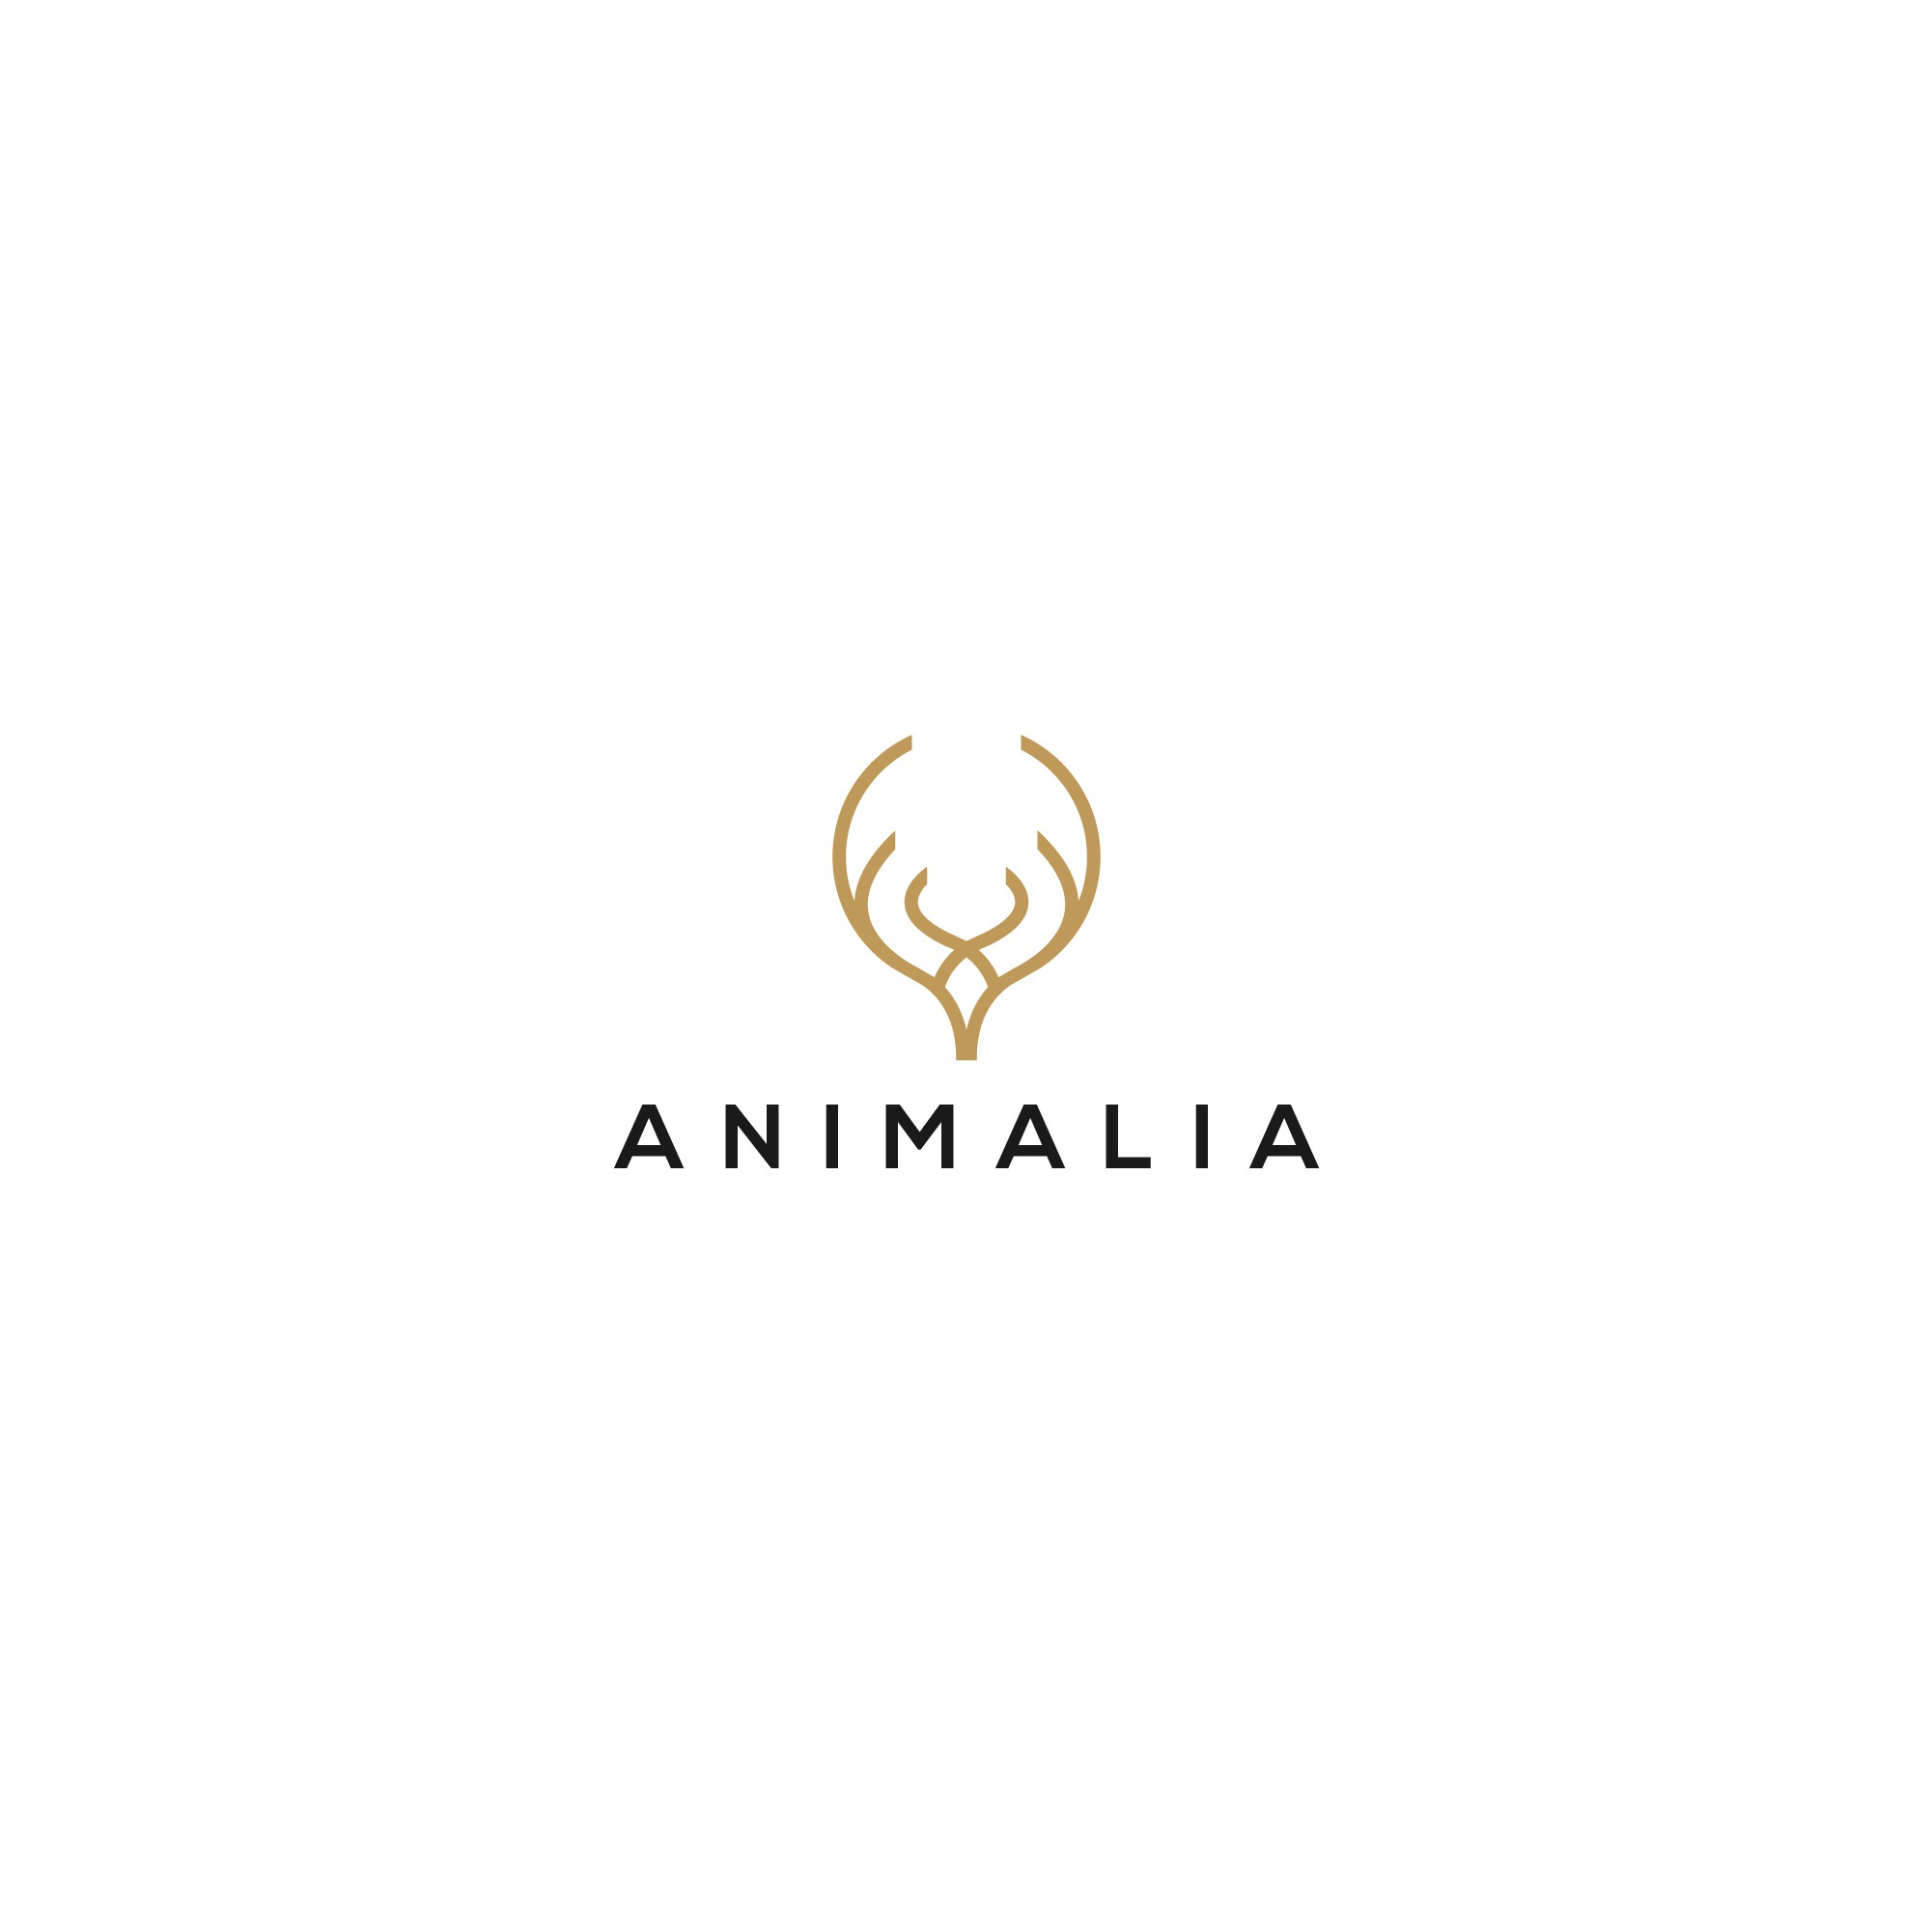 3D animals in need of some great logo.